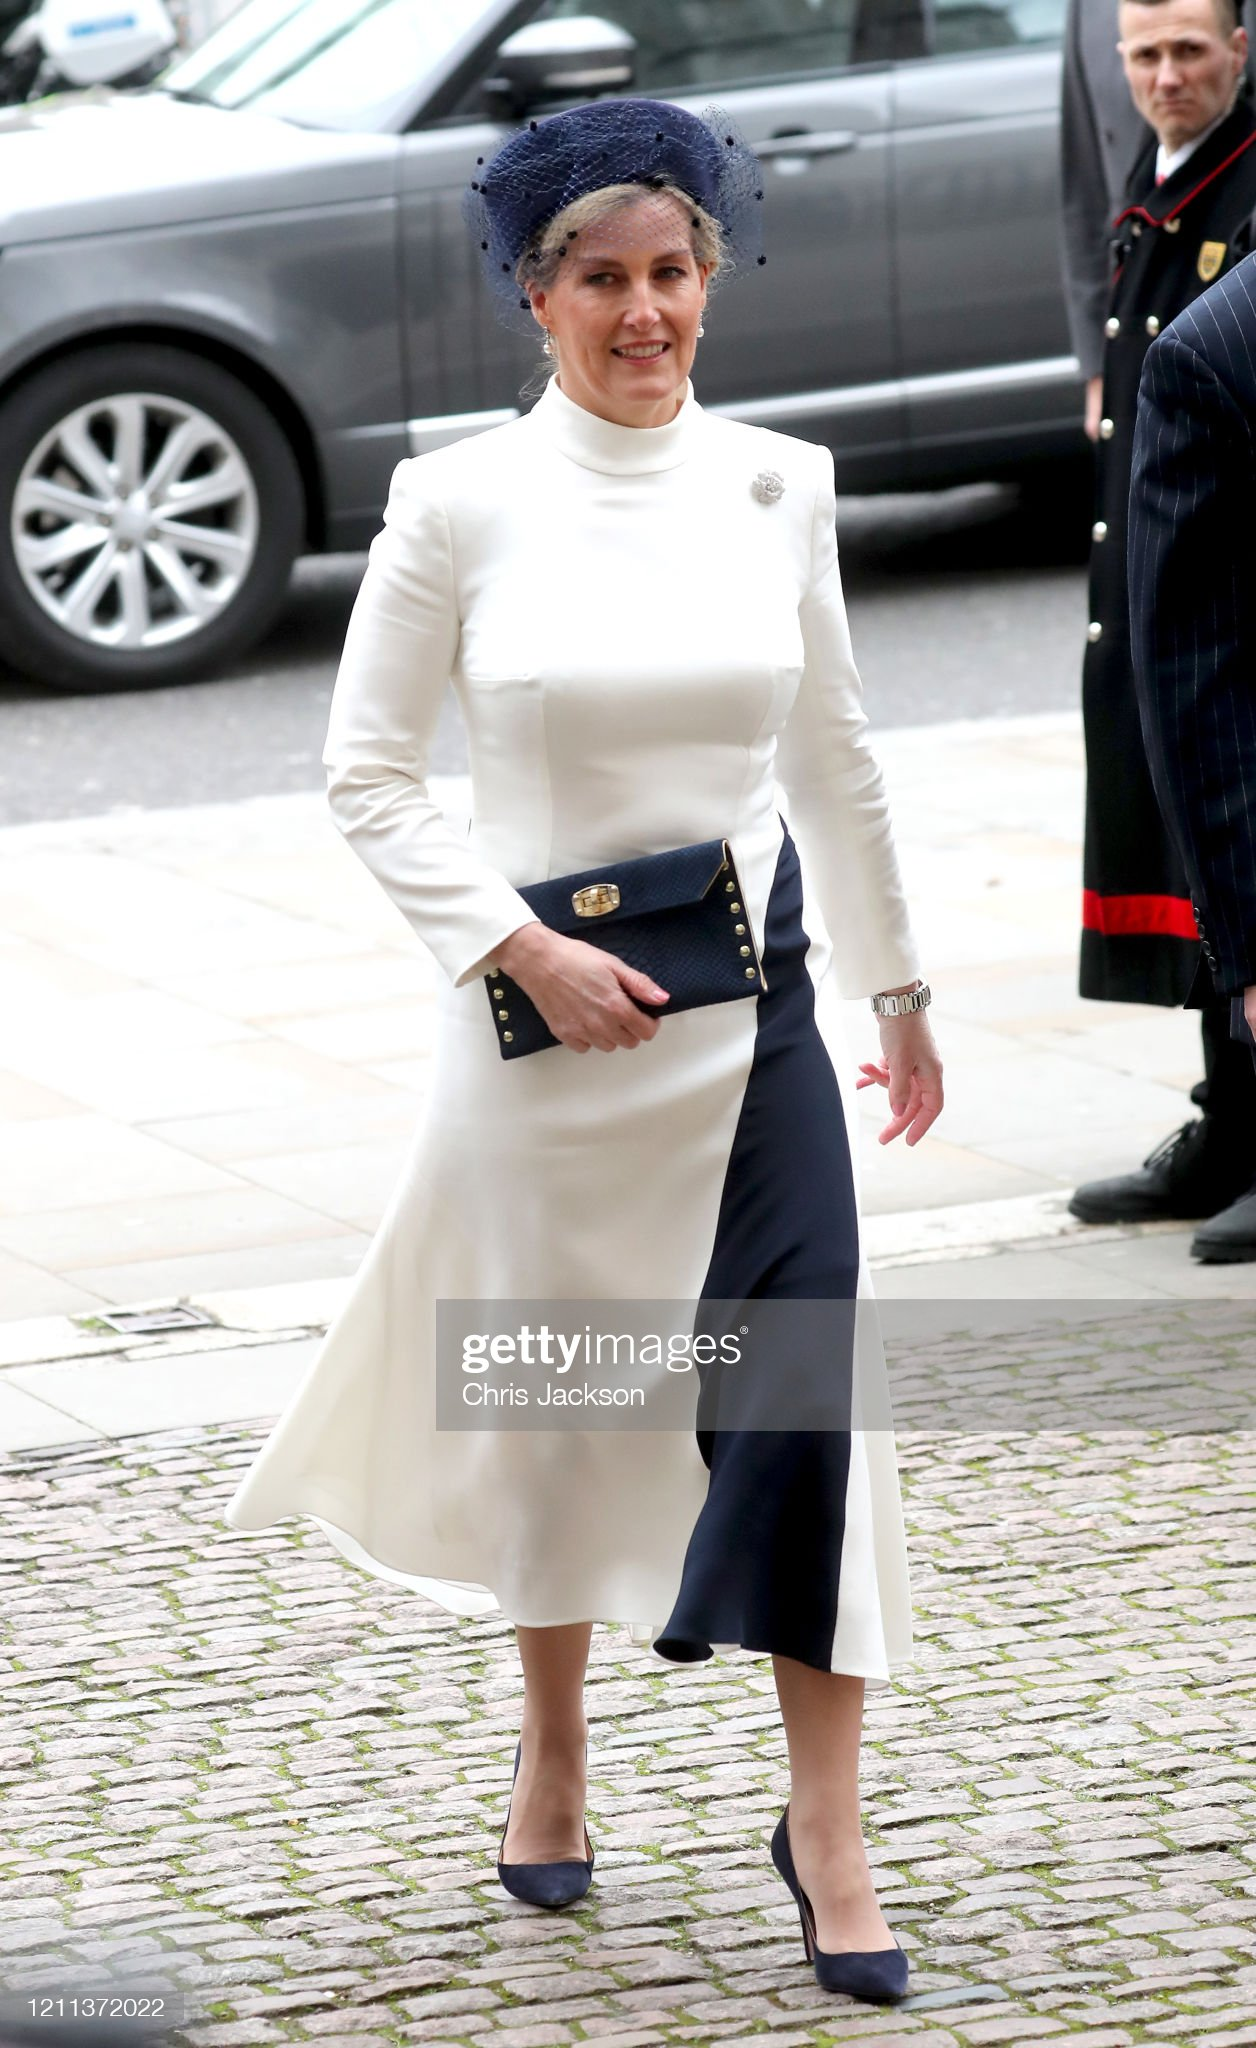 https://media.gettyimages.com/photos/sophie-countess-of-wessex-attends-the-commonwealth-day-service-2020-picture-id1211372022?s=2048x2048